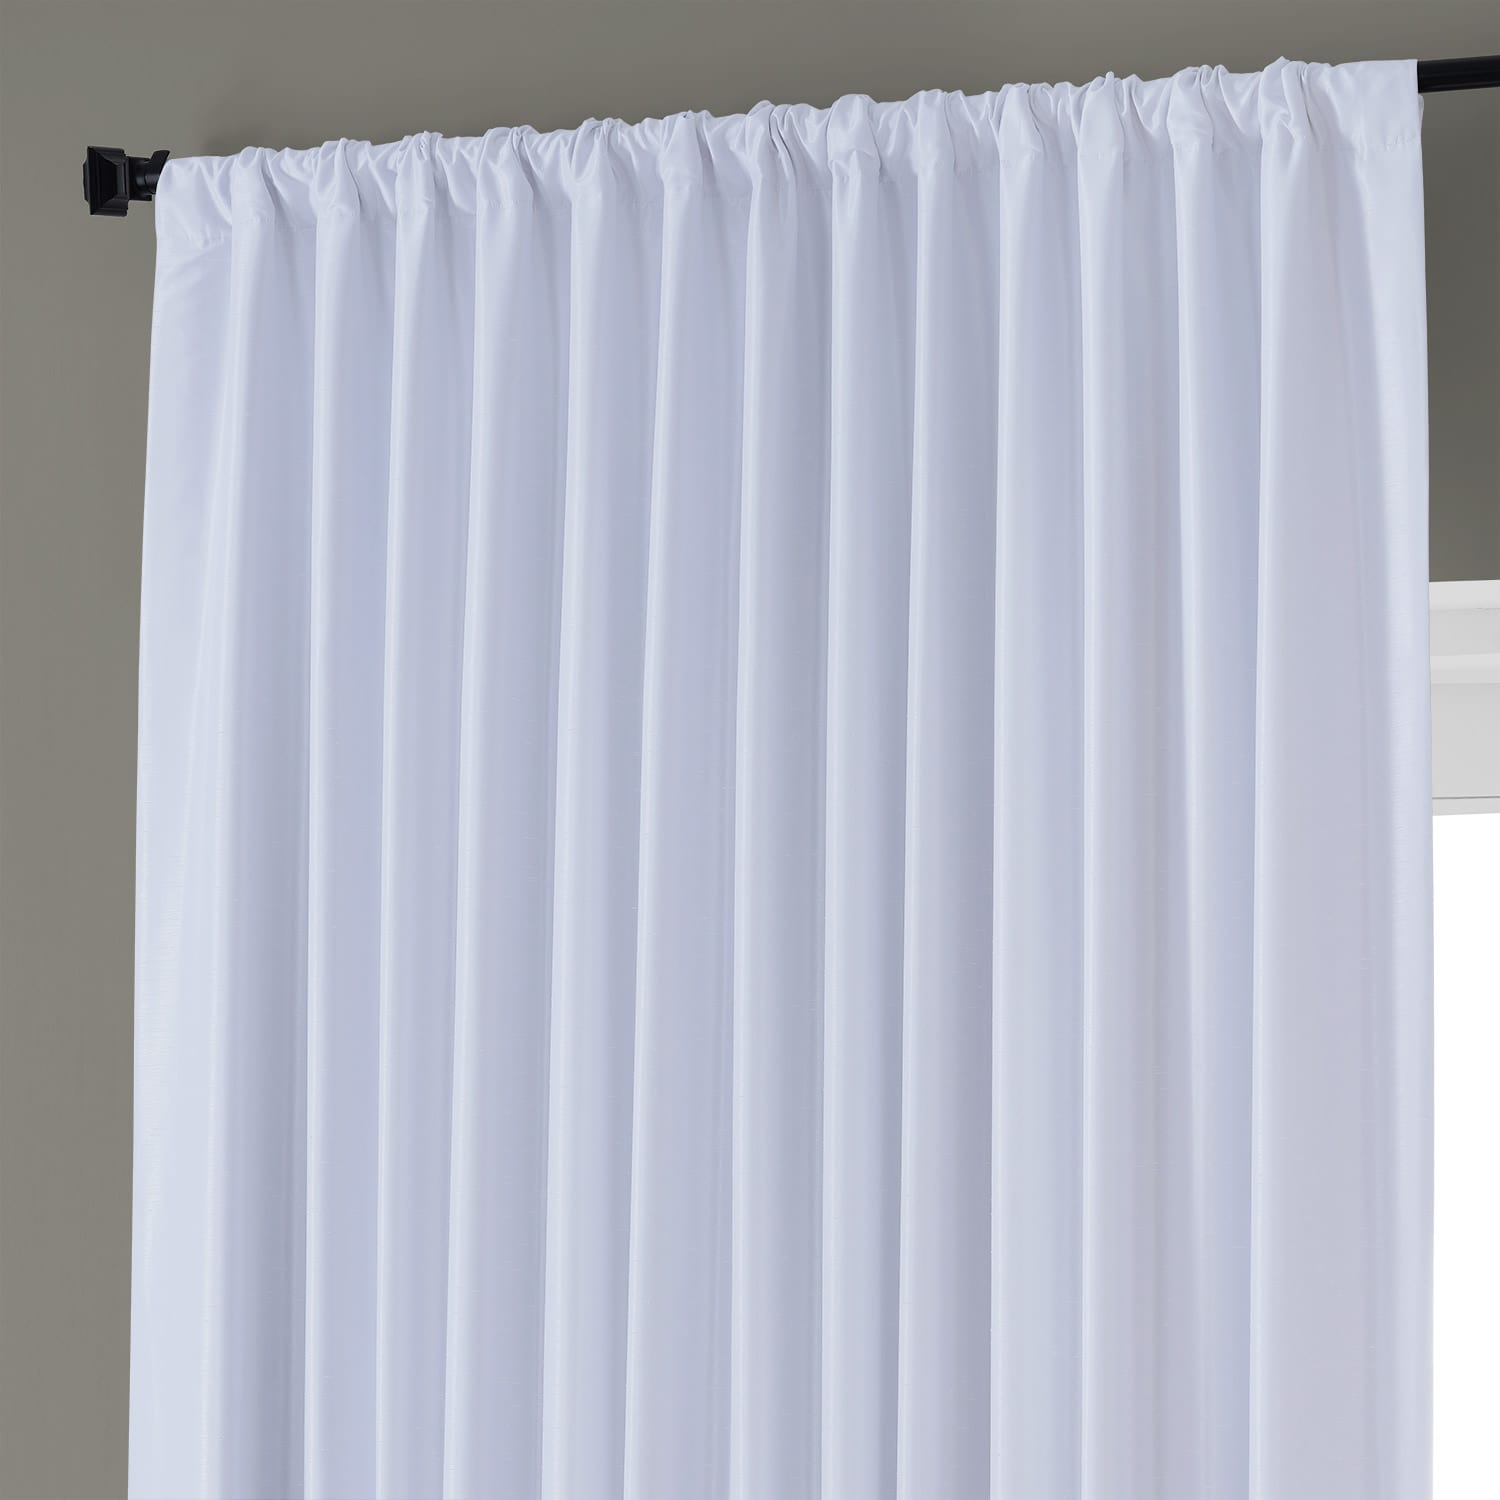 ice blackout extra wide textured faux dupioni curtain. Black Bedroom Furniture Sets. Home Design Ideas